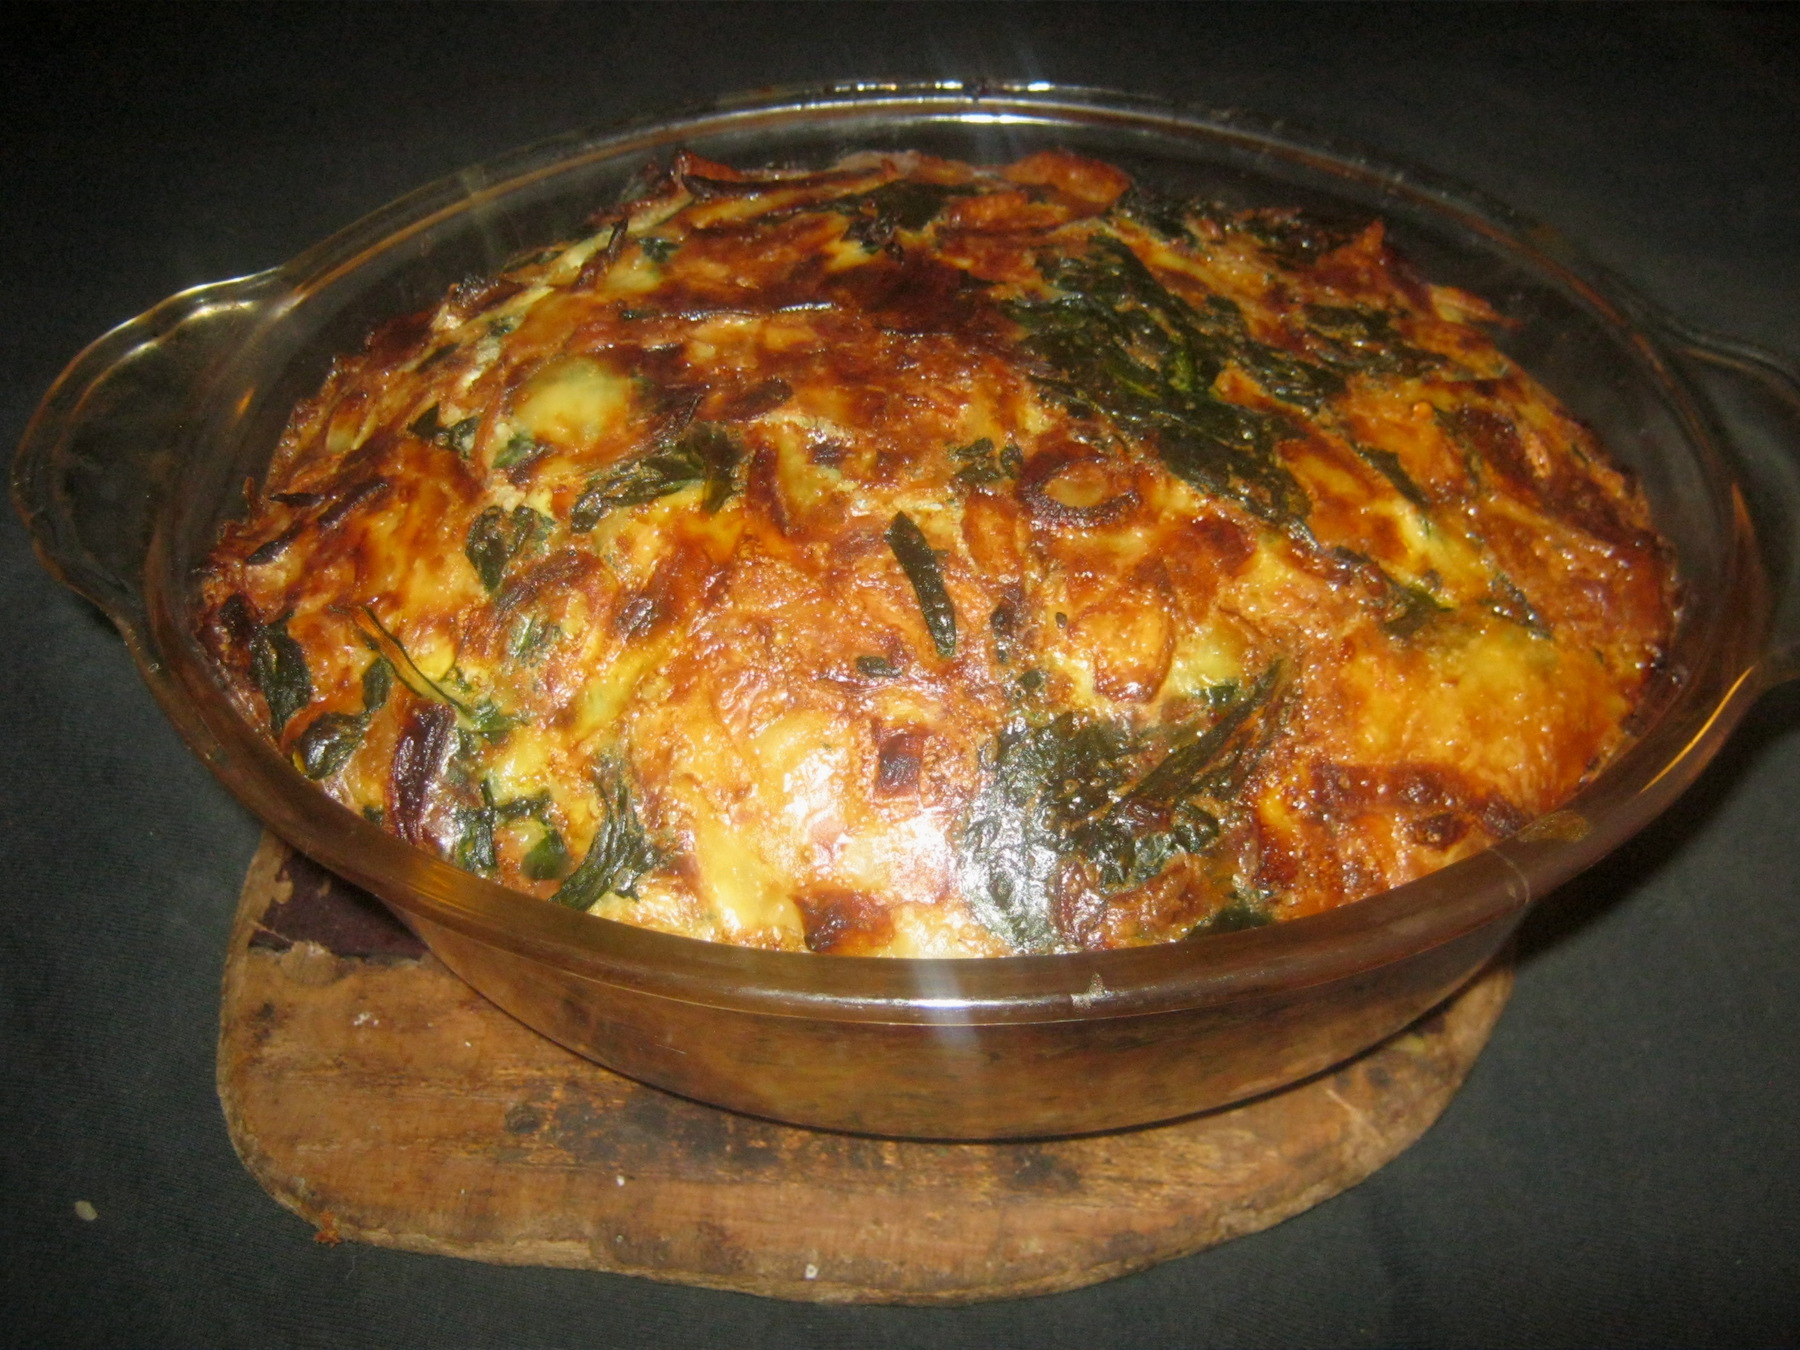 Spanish omelette with spinach in casserole dish